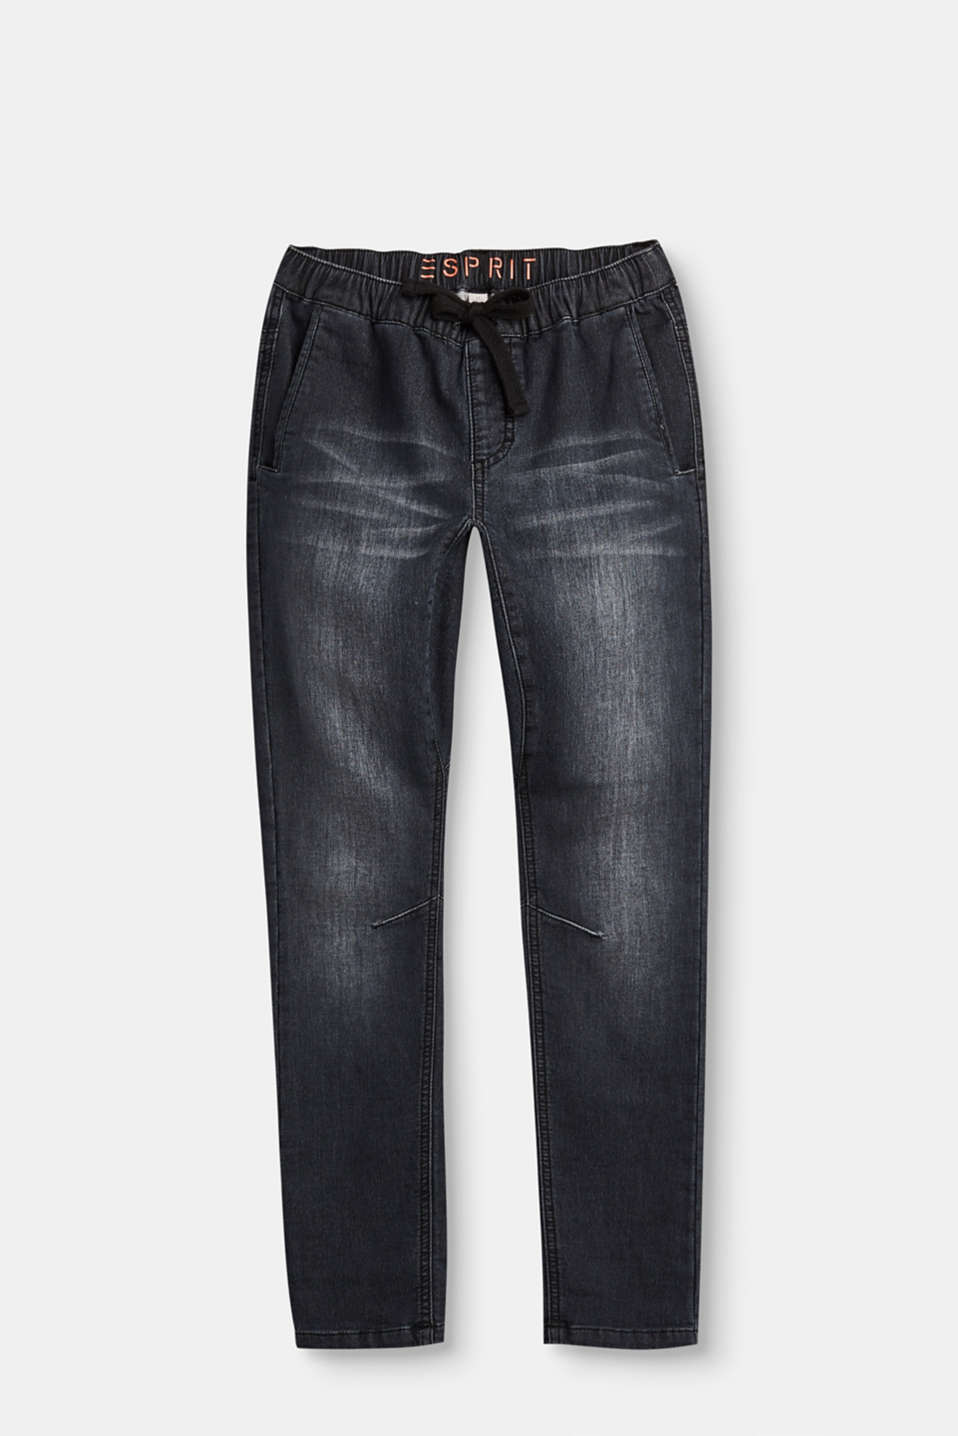 Esprit - Softe Stretch-Jeans im Jogger-Style